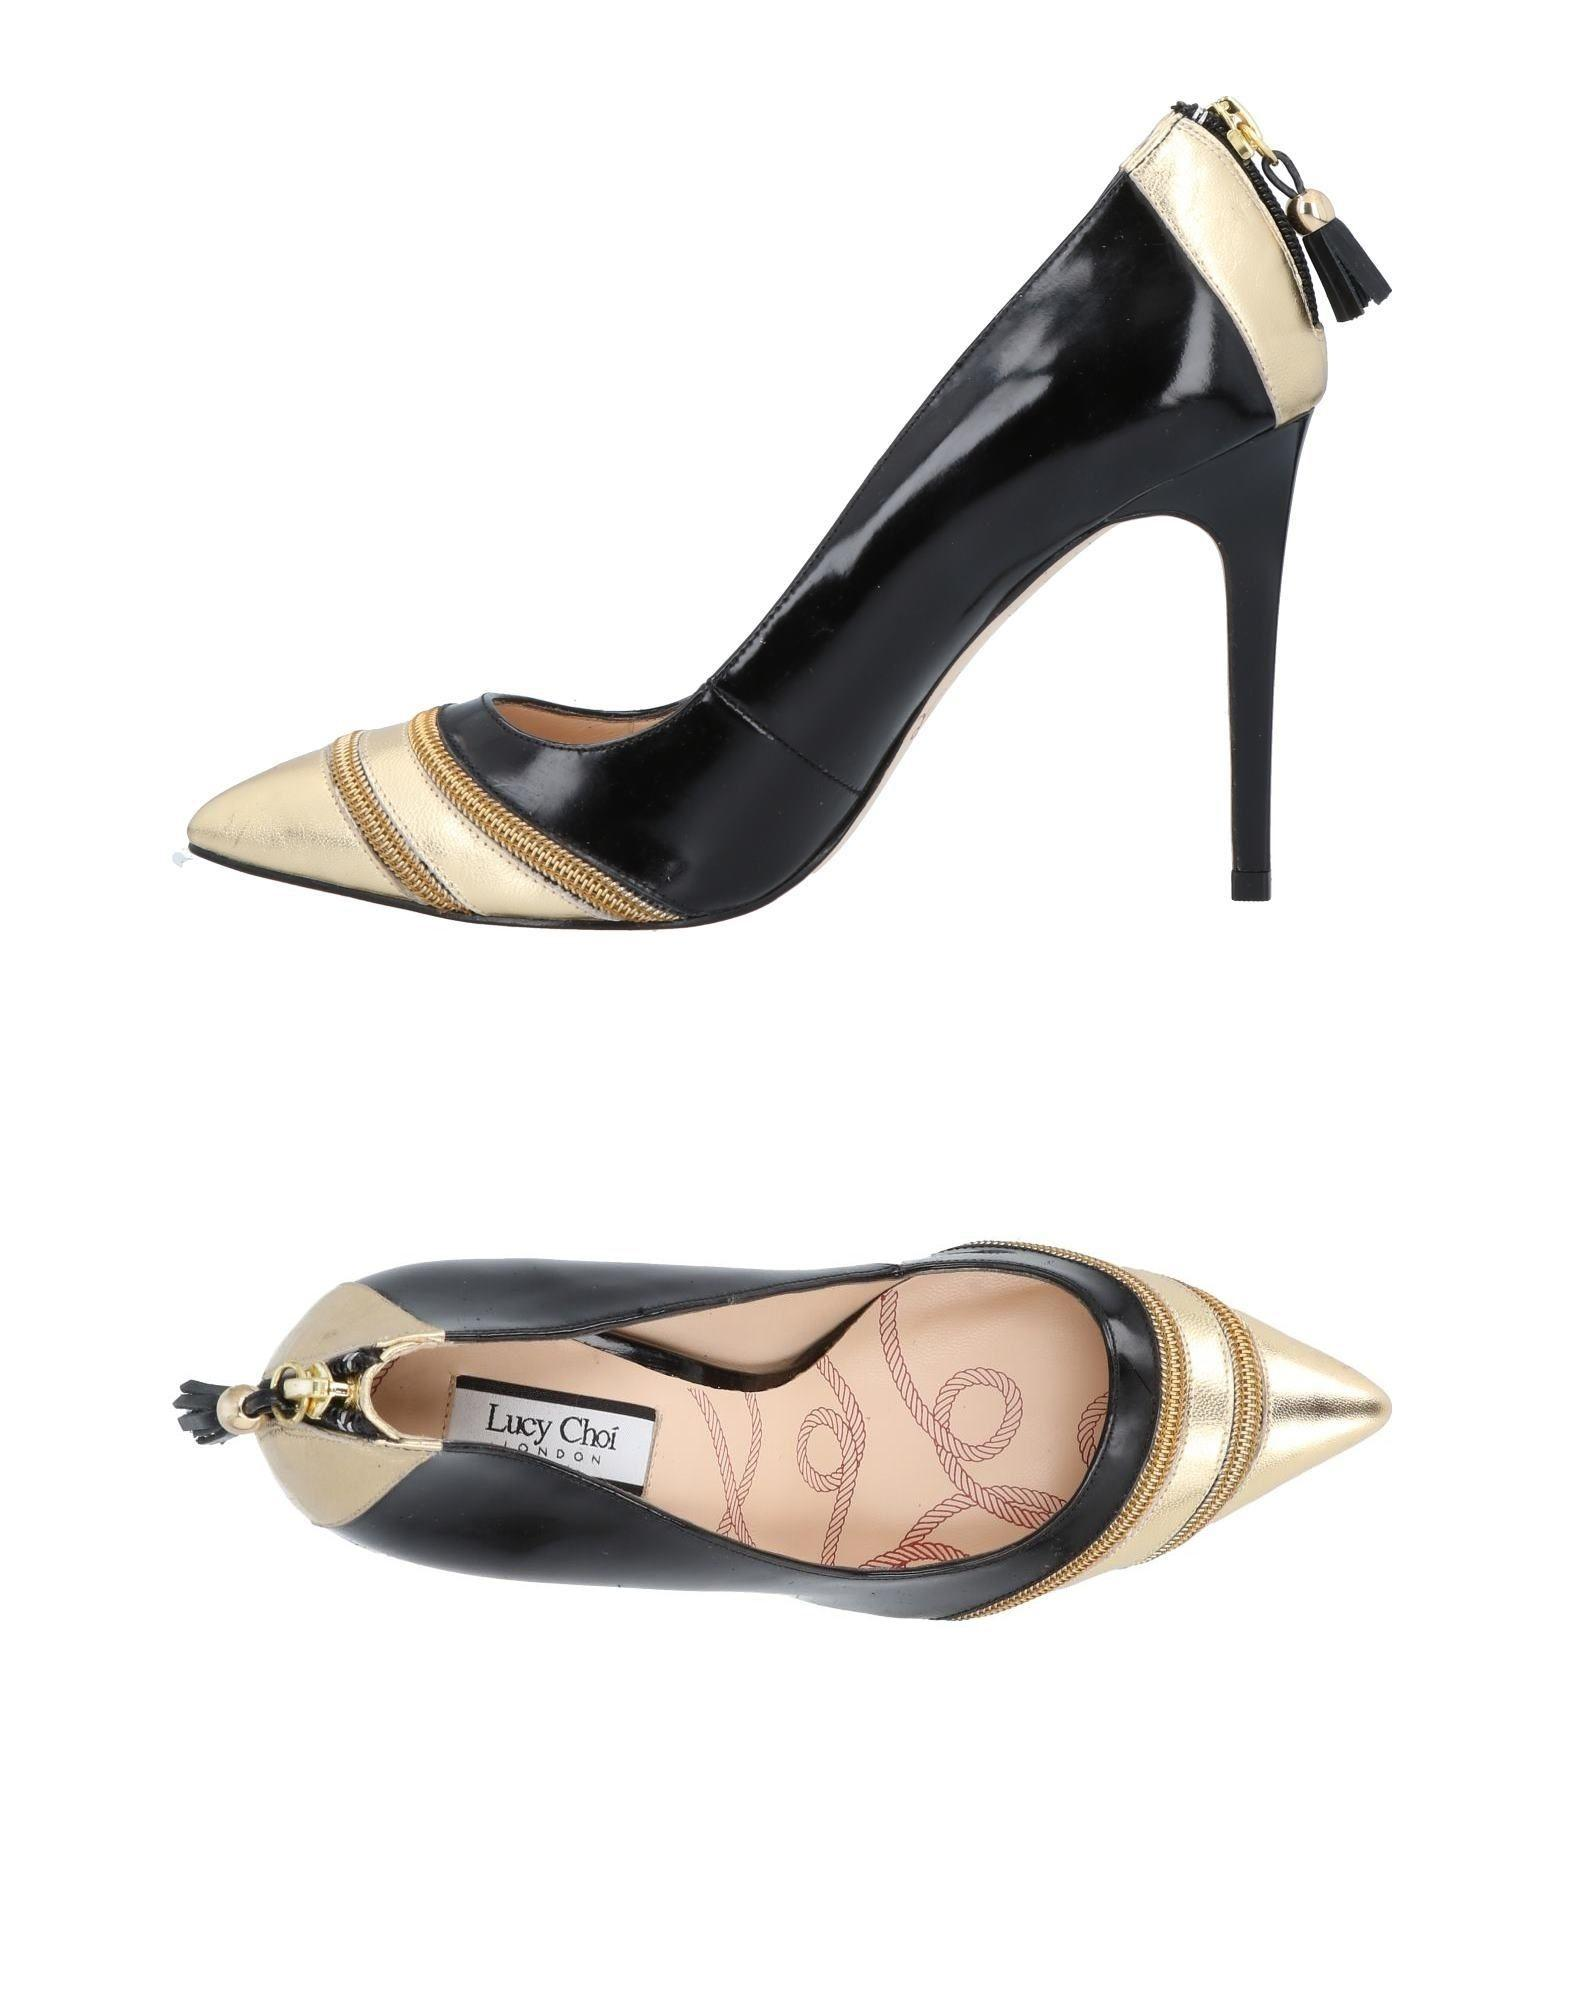 Lucy Choi London Pumps In Black